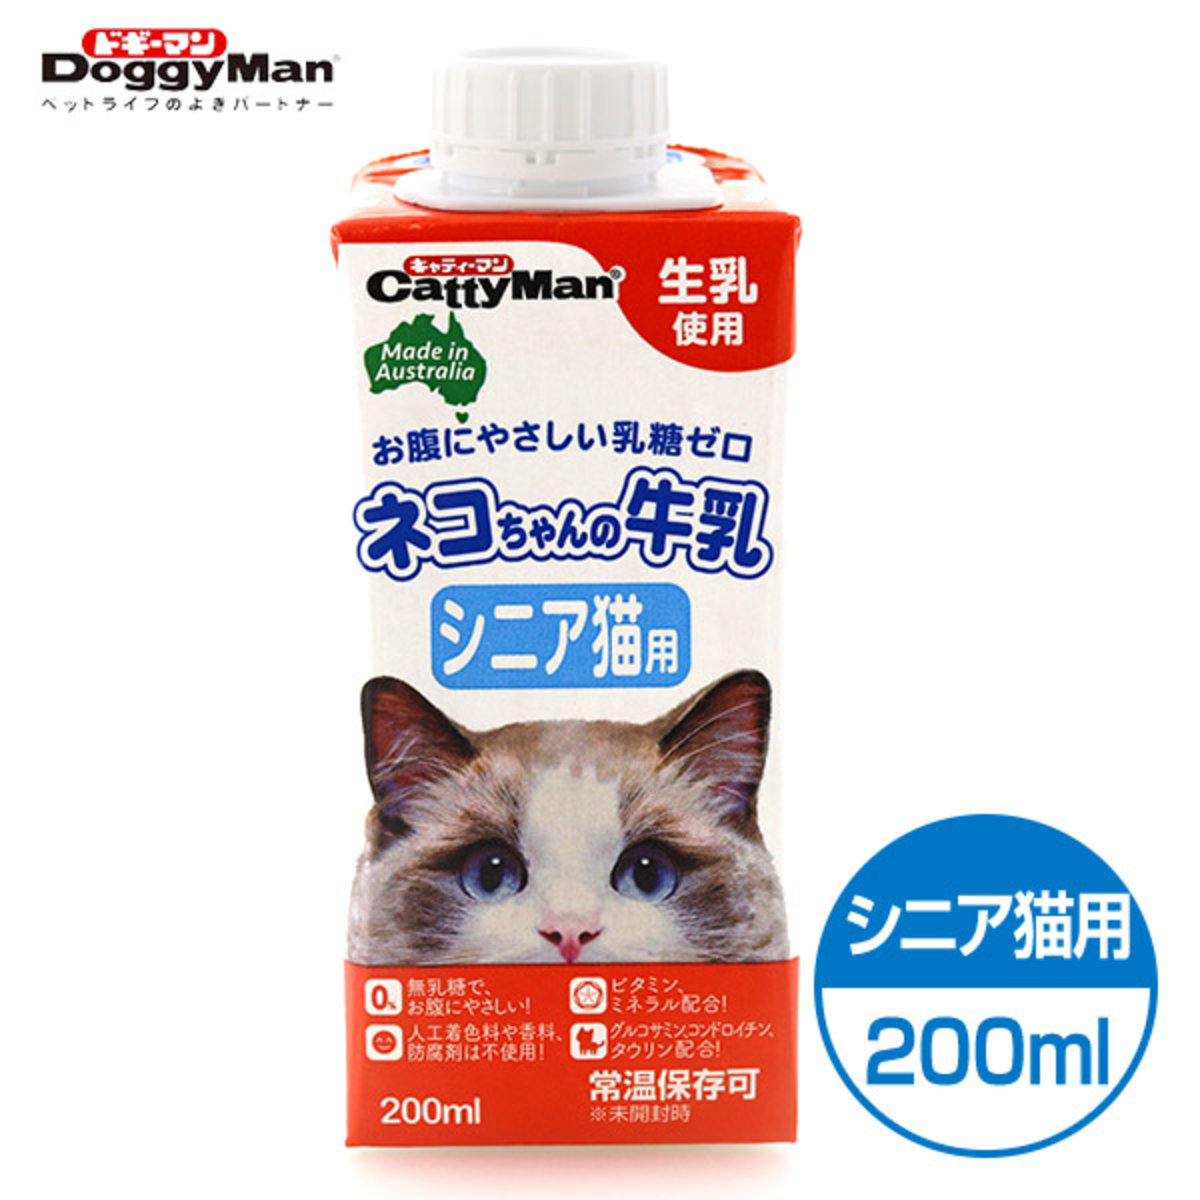 日本CattyMan-Australia Milk for cat 200ml-(Senior cat use)